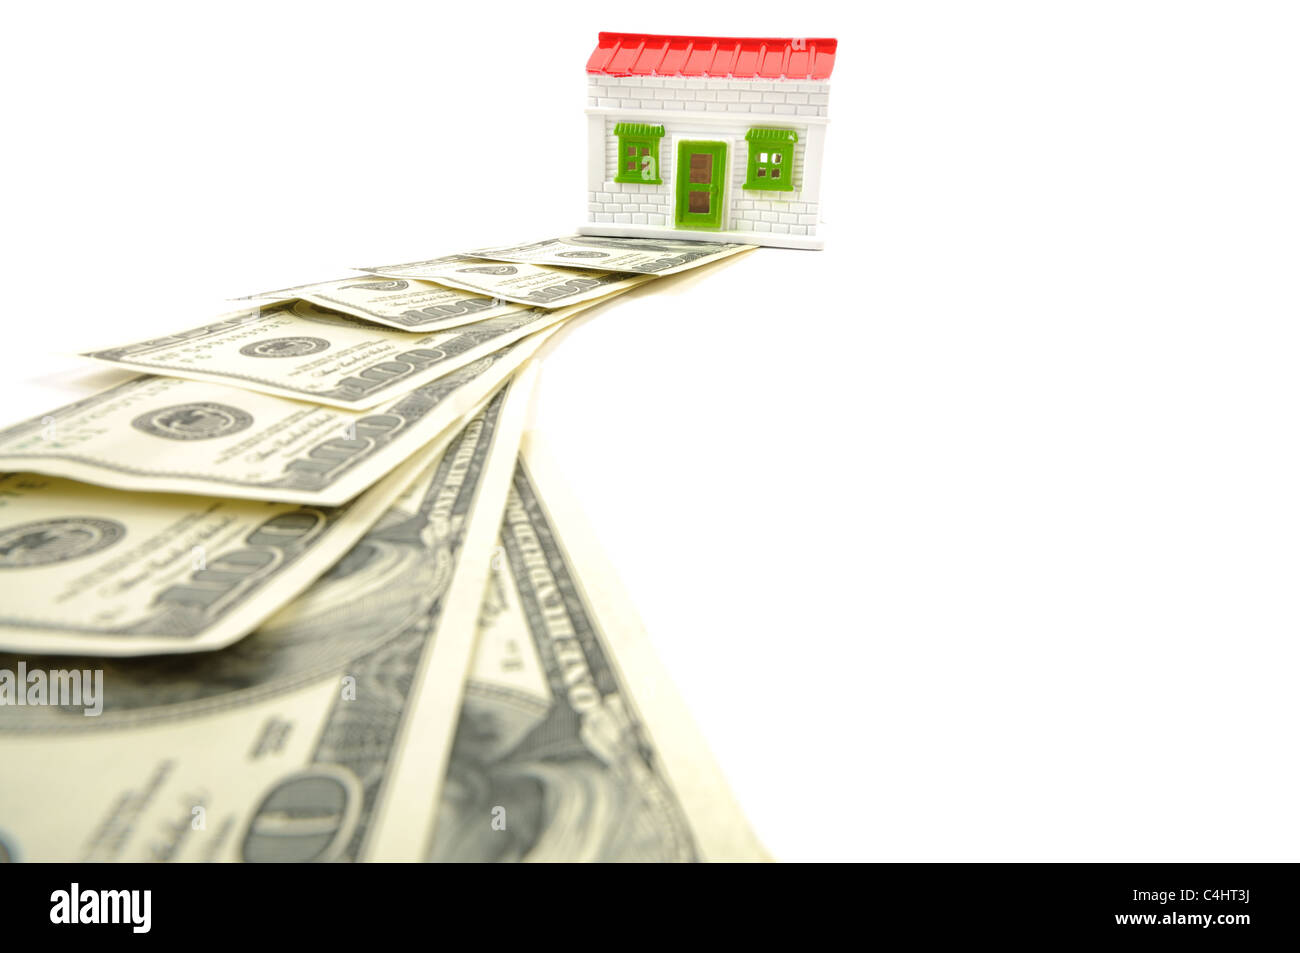 A way to get a new house, dollars and house over white background - Stock Image